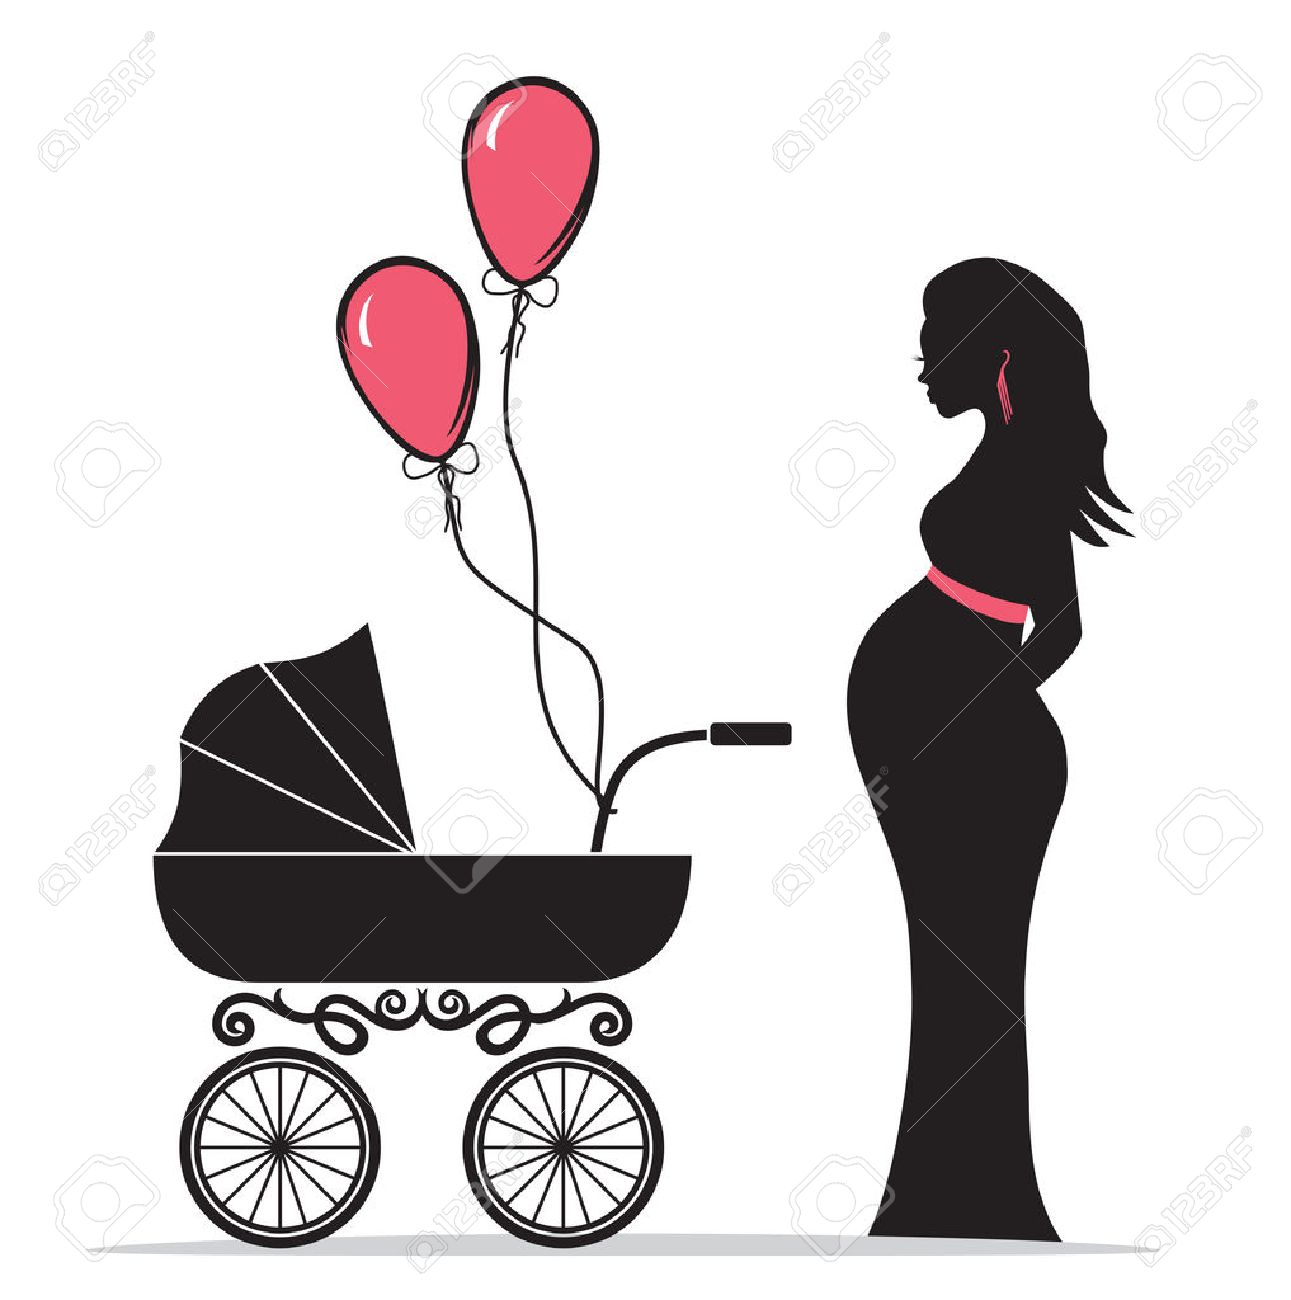 Pregnant woman silhouette with baby carriage.